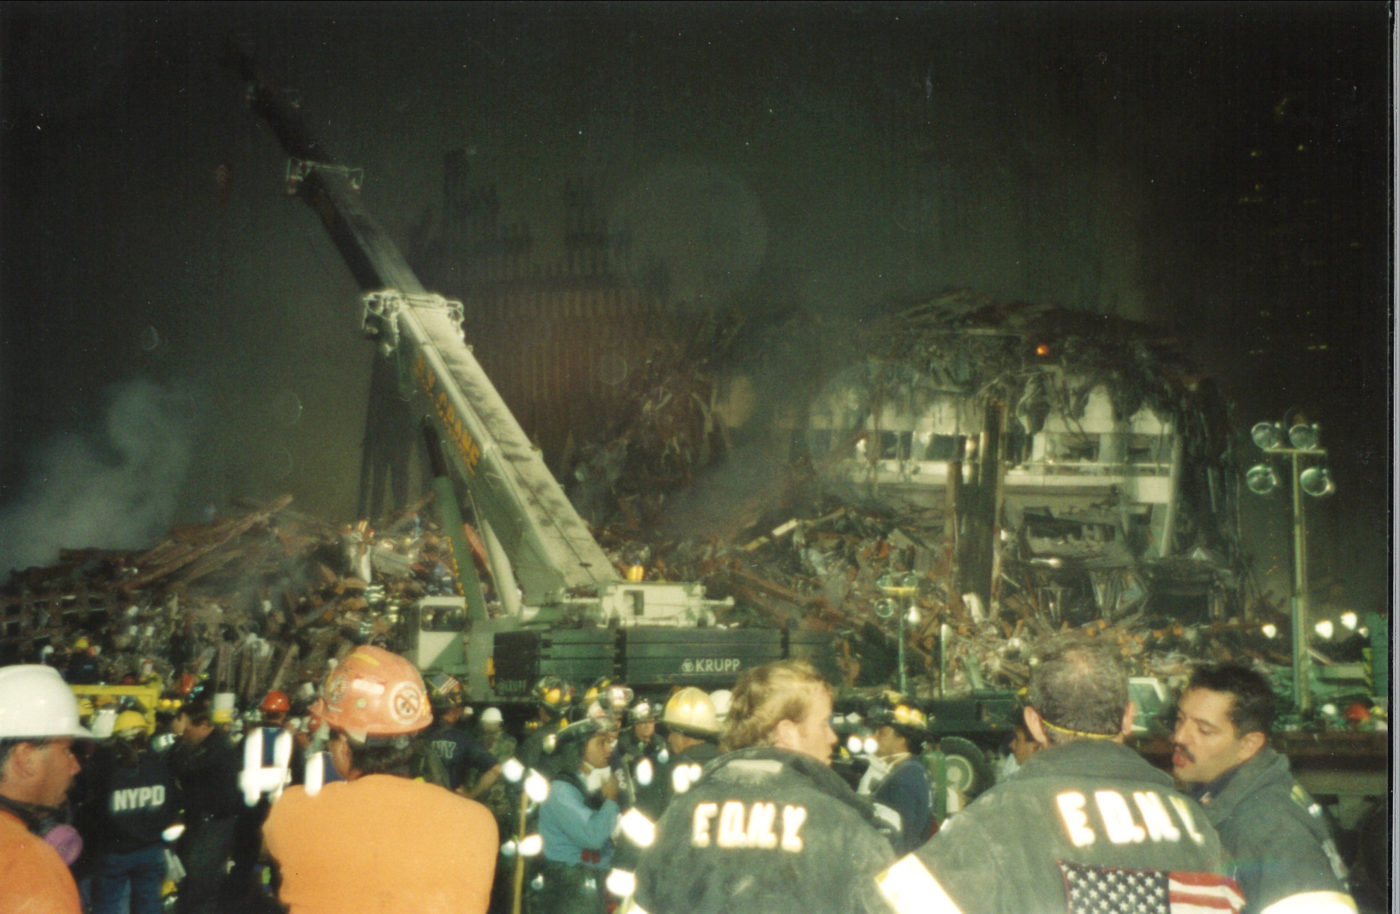 Workers and the FDNY working at Night